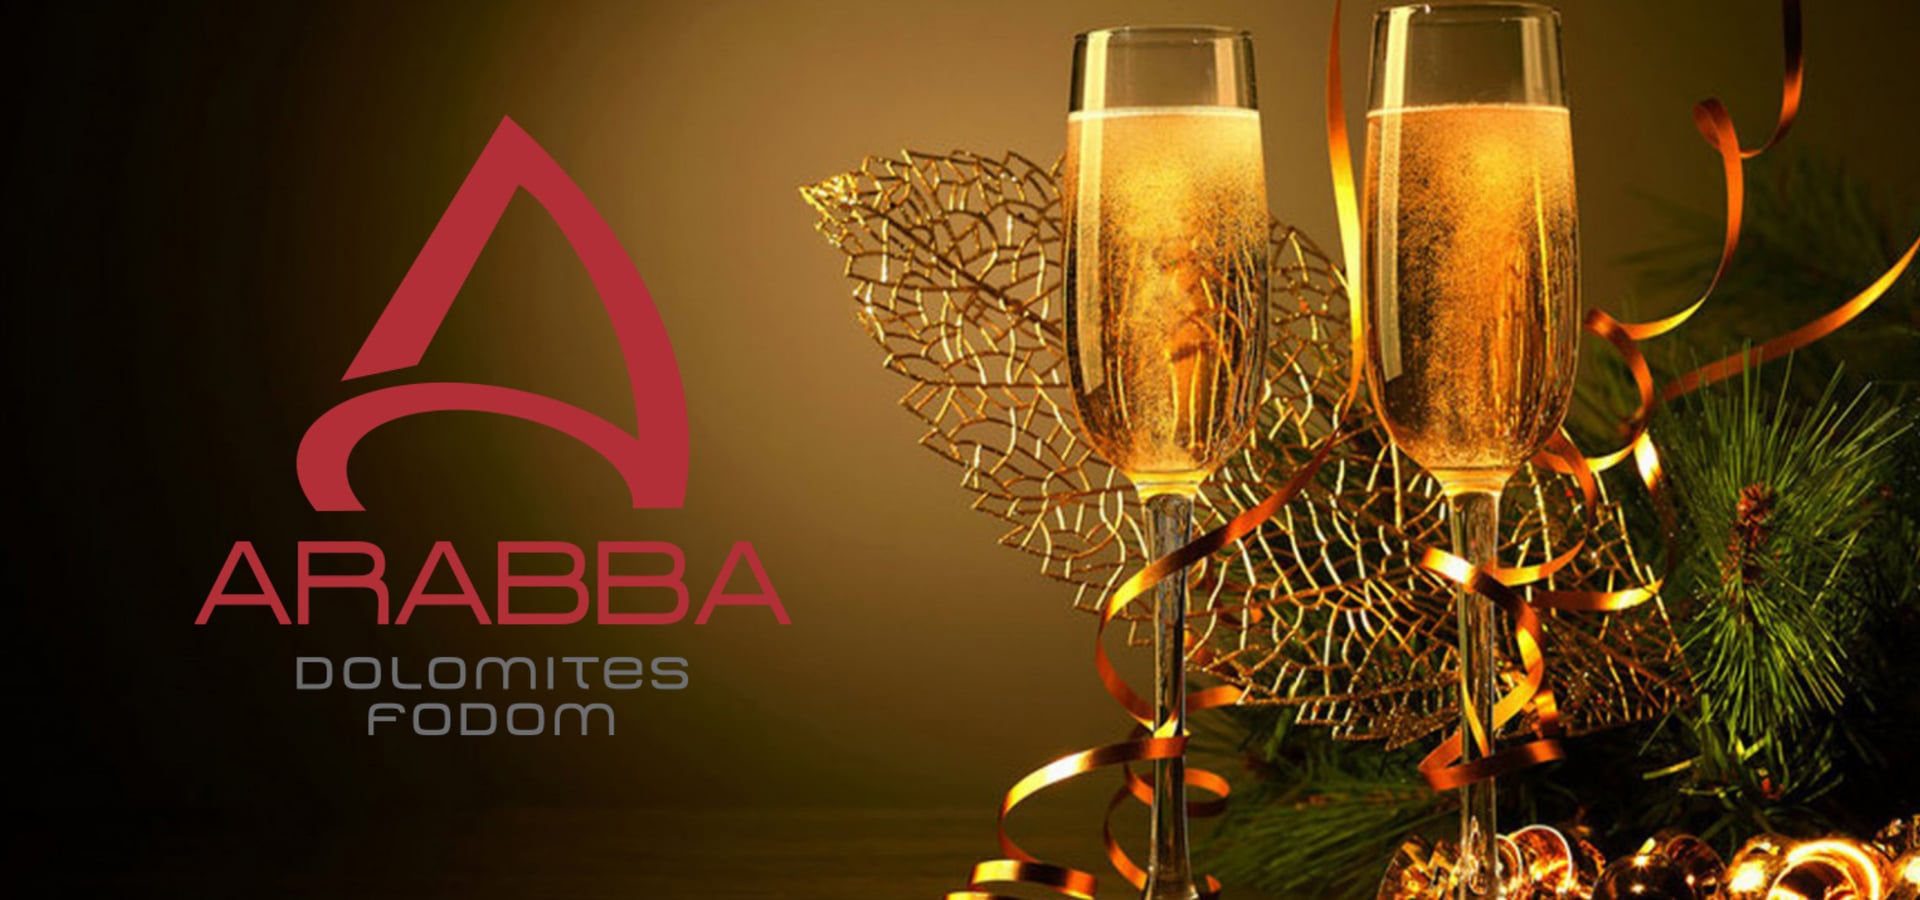 New Year's Eve Dinners in Arabba Area